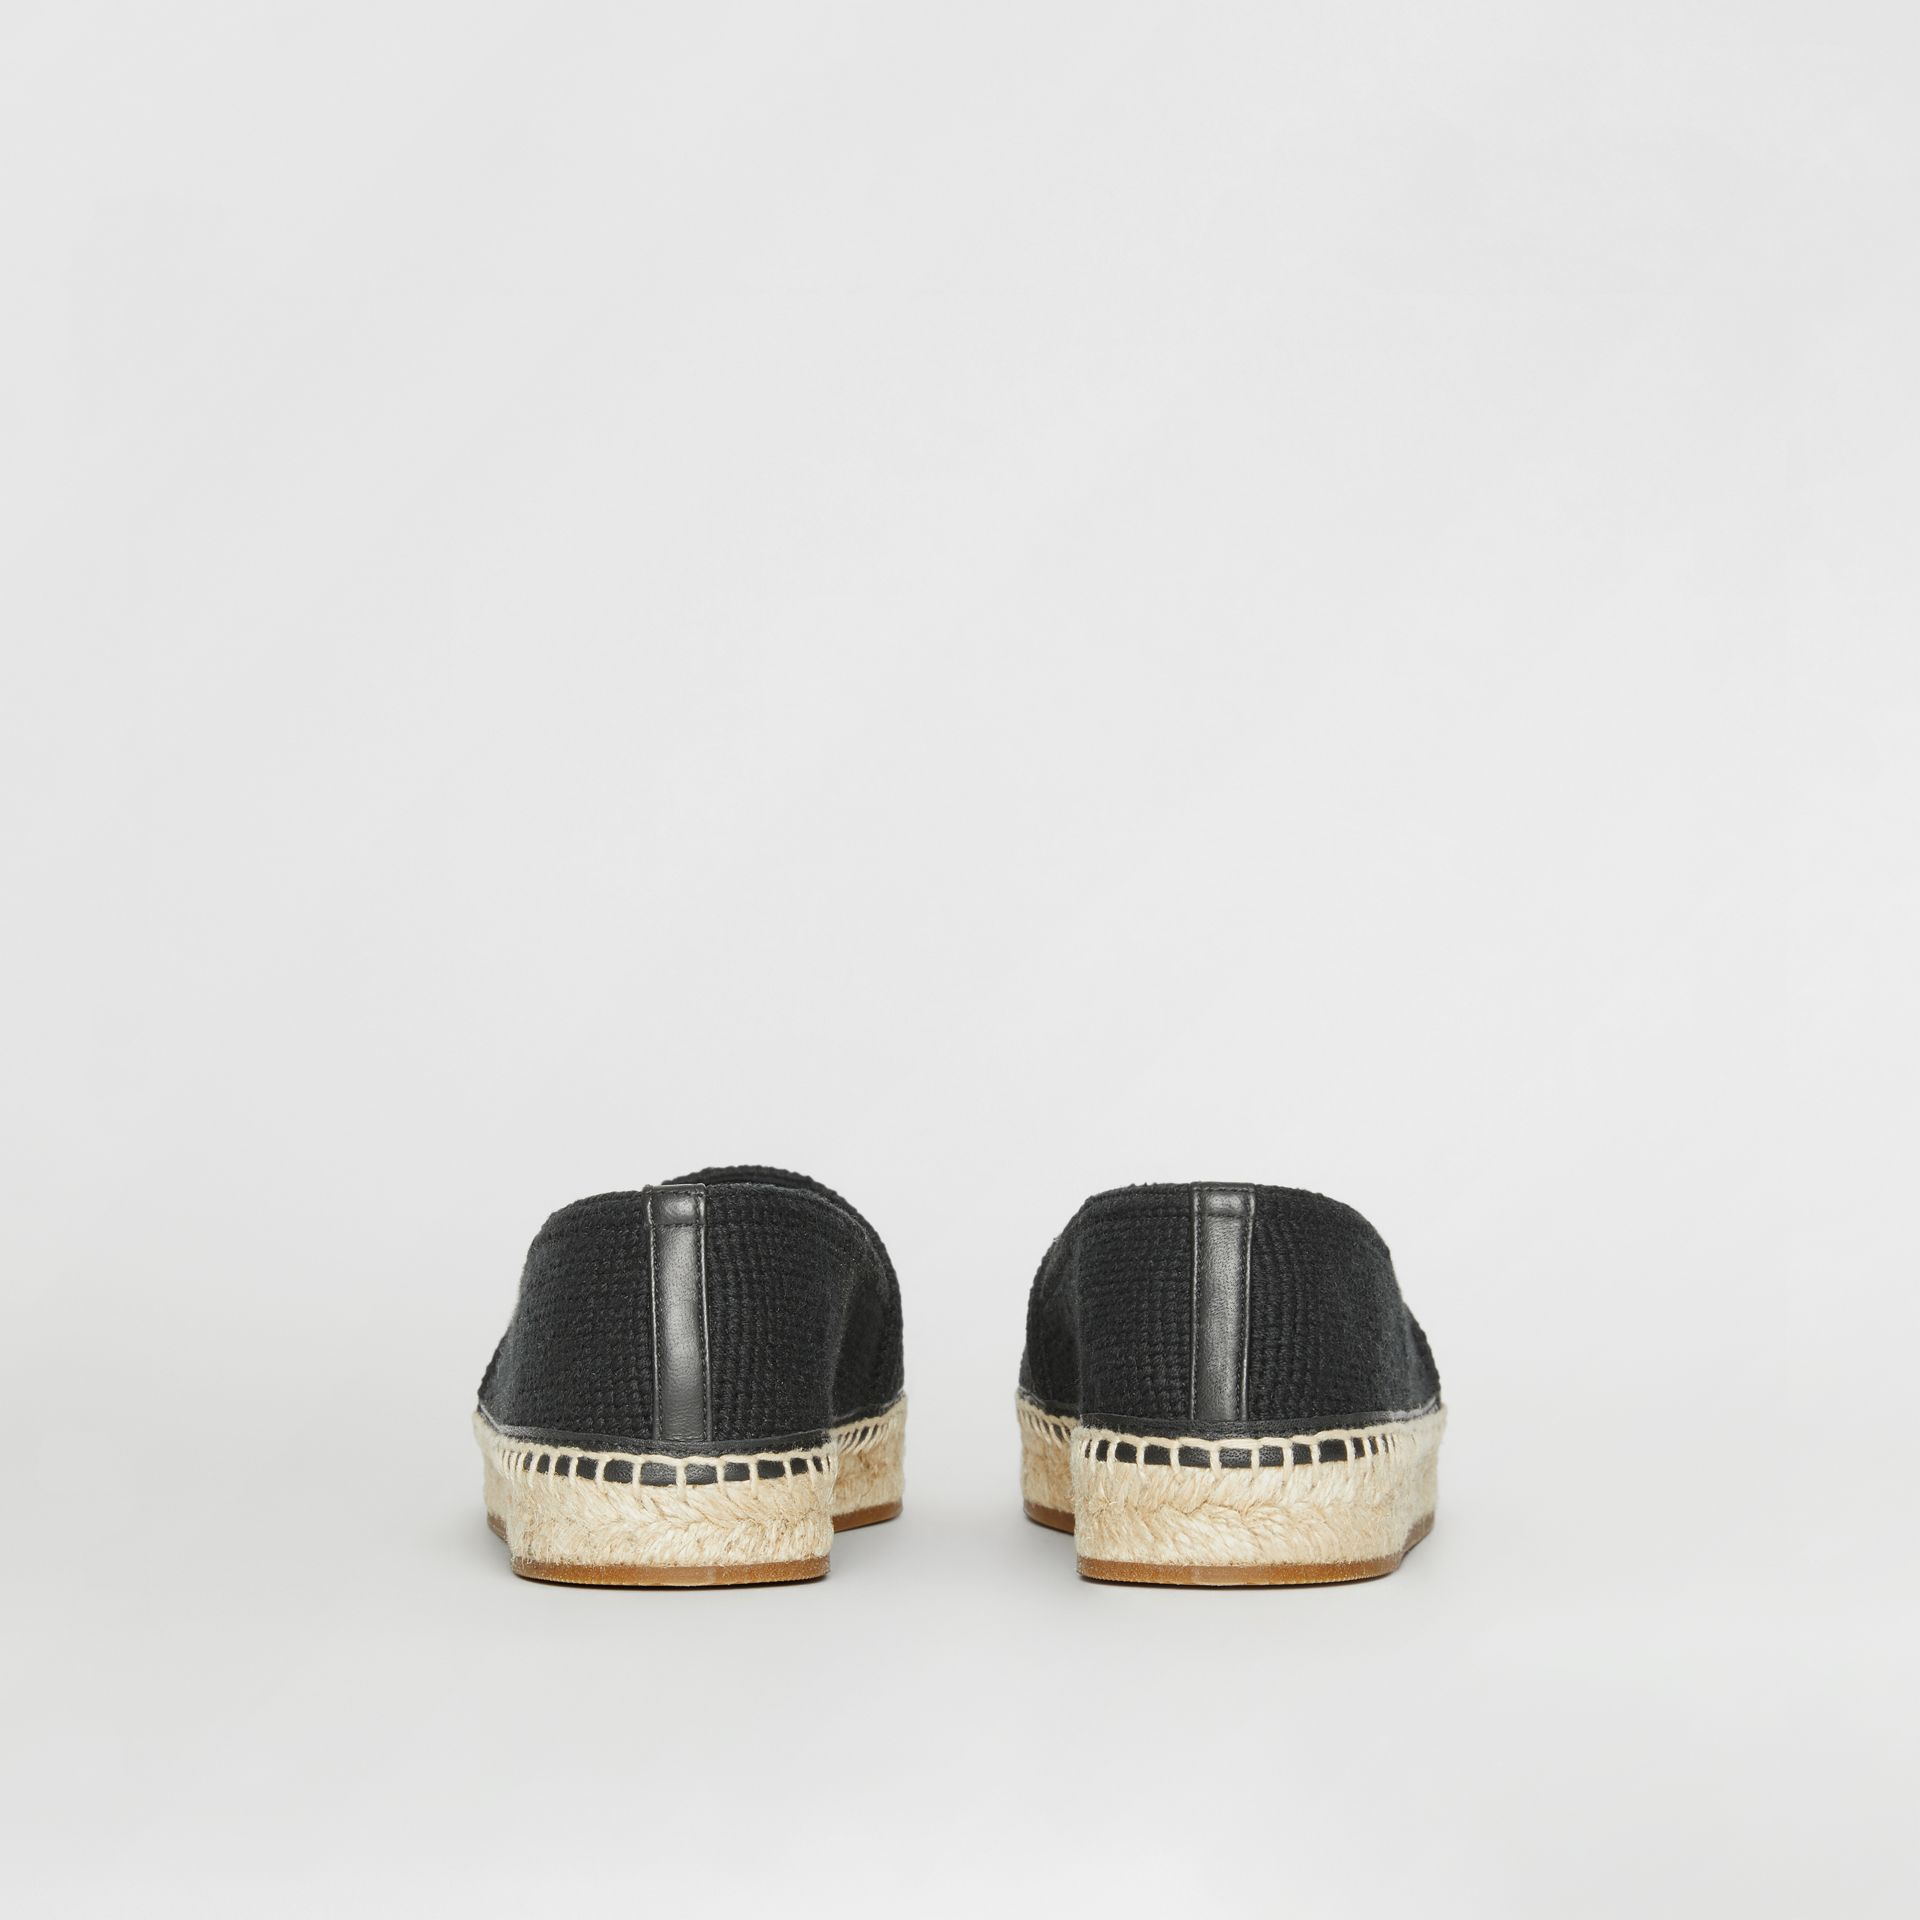 Monogram Motif Cotton and Leather Espadrilles in Black/ecru - Women | Burberry - gallery image 3